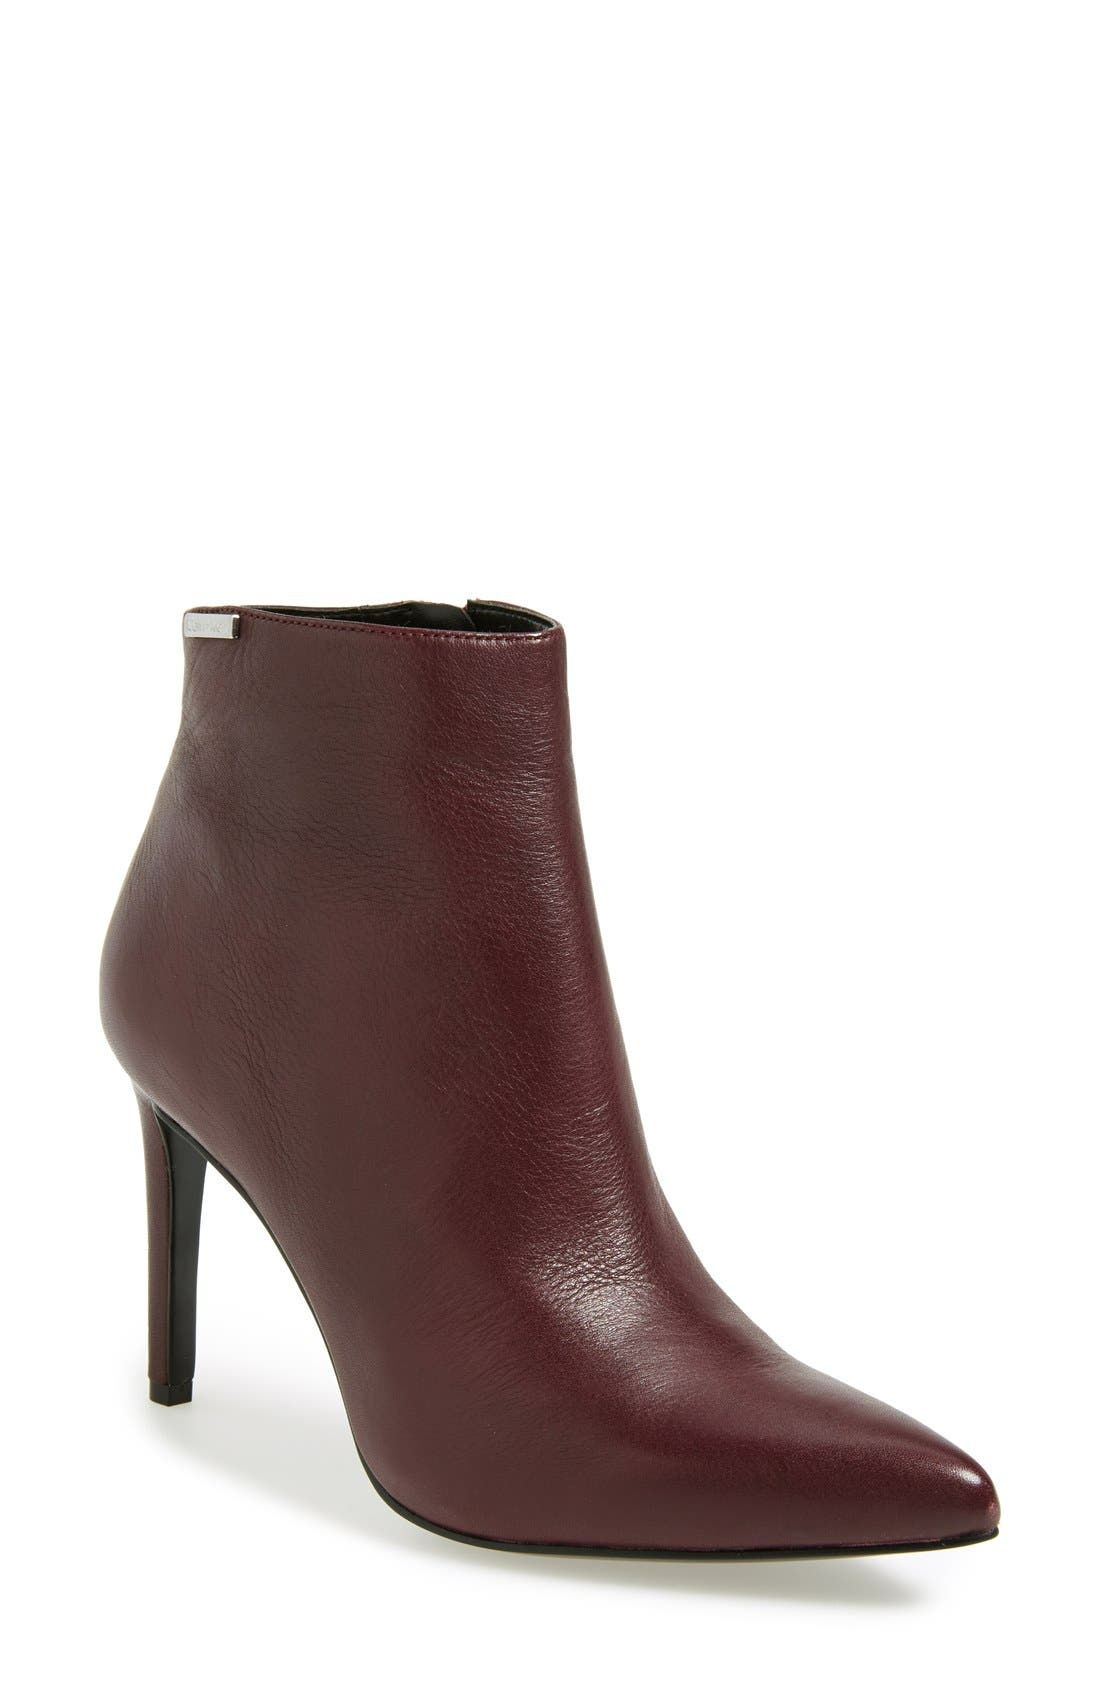 Alternate Image 1 Selected - Calvin Klein 'Clariss' Pointy Toe Bootie (Women)